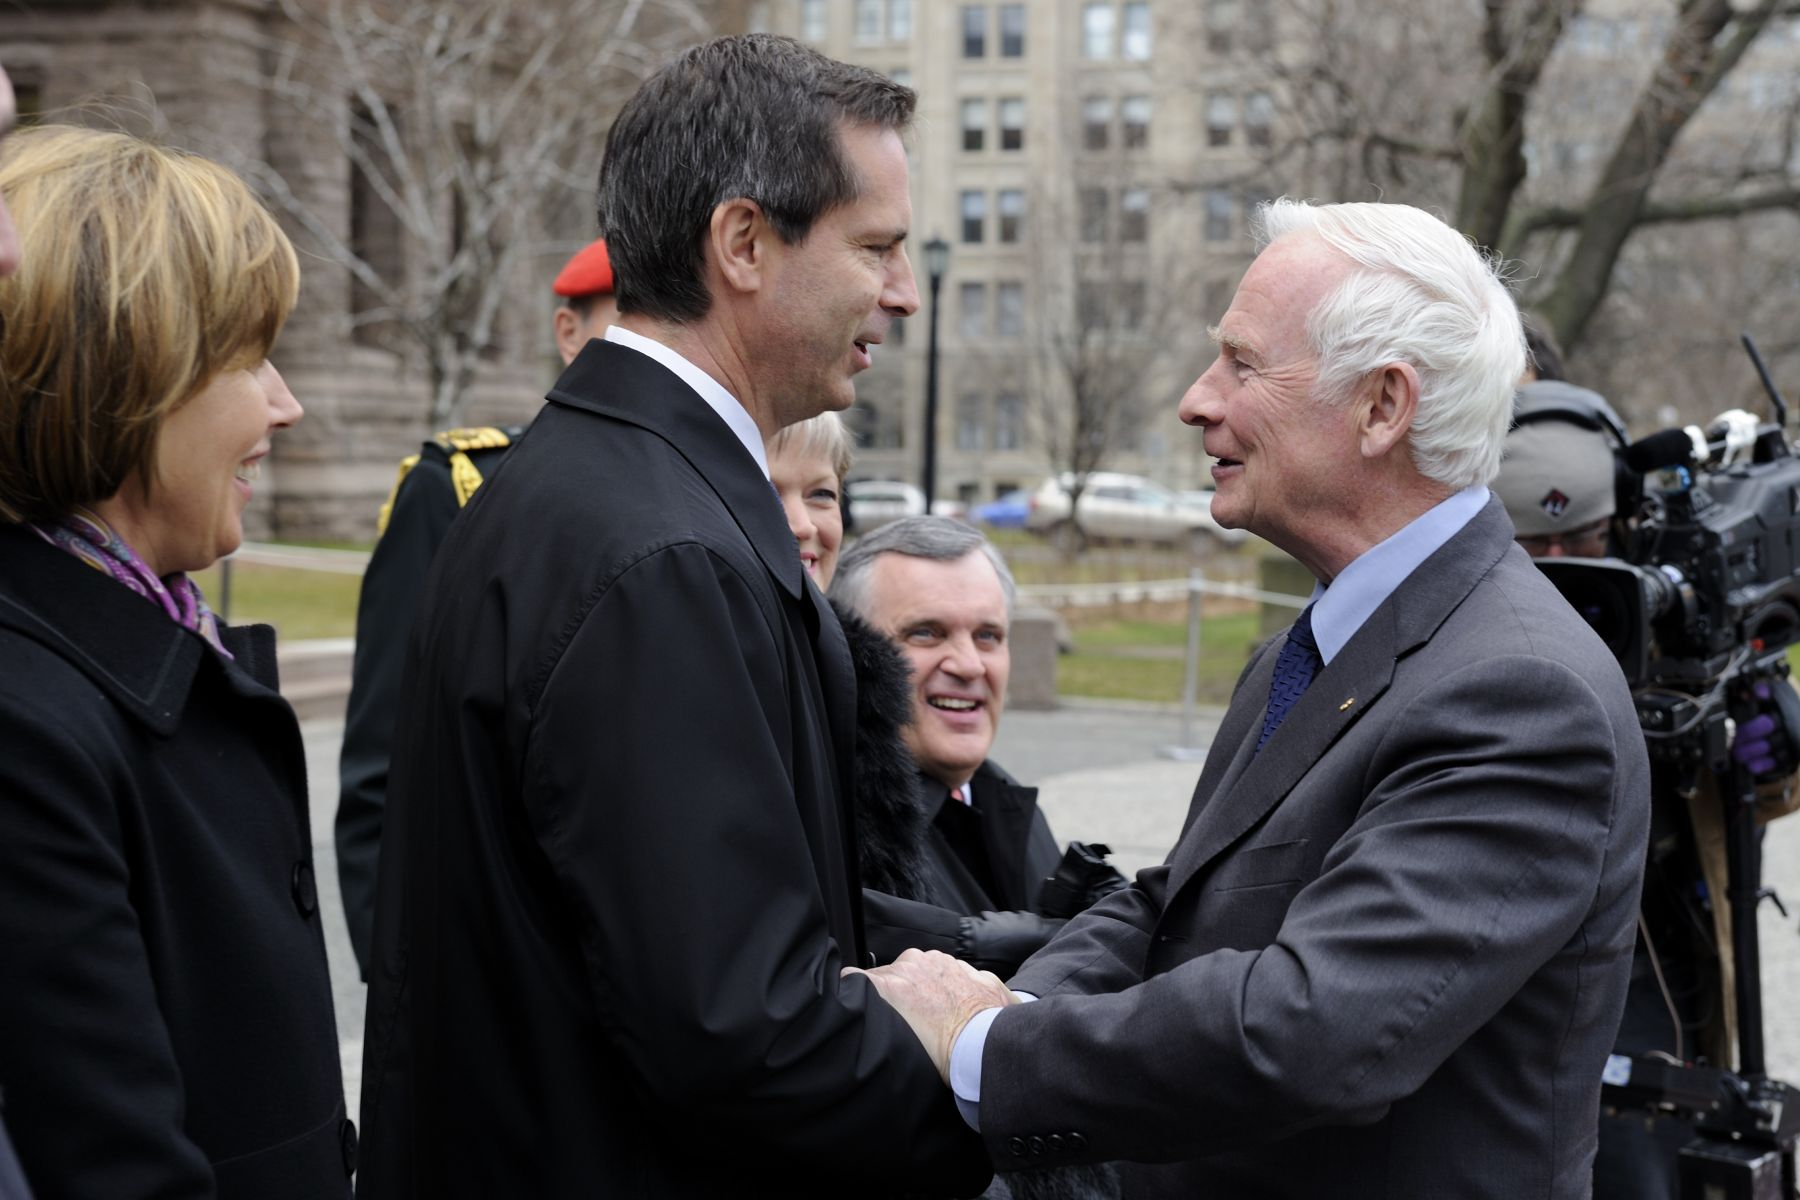 The Honourable Dalton McGuinty, Premier of Ontario was also on hand to welcome the Governor General.